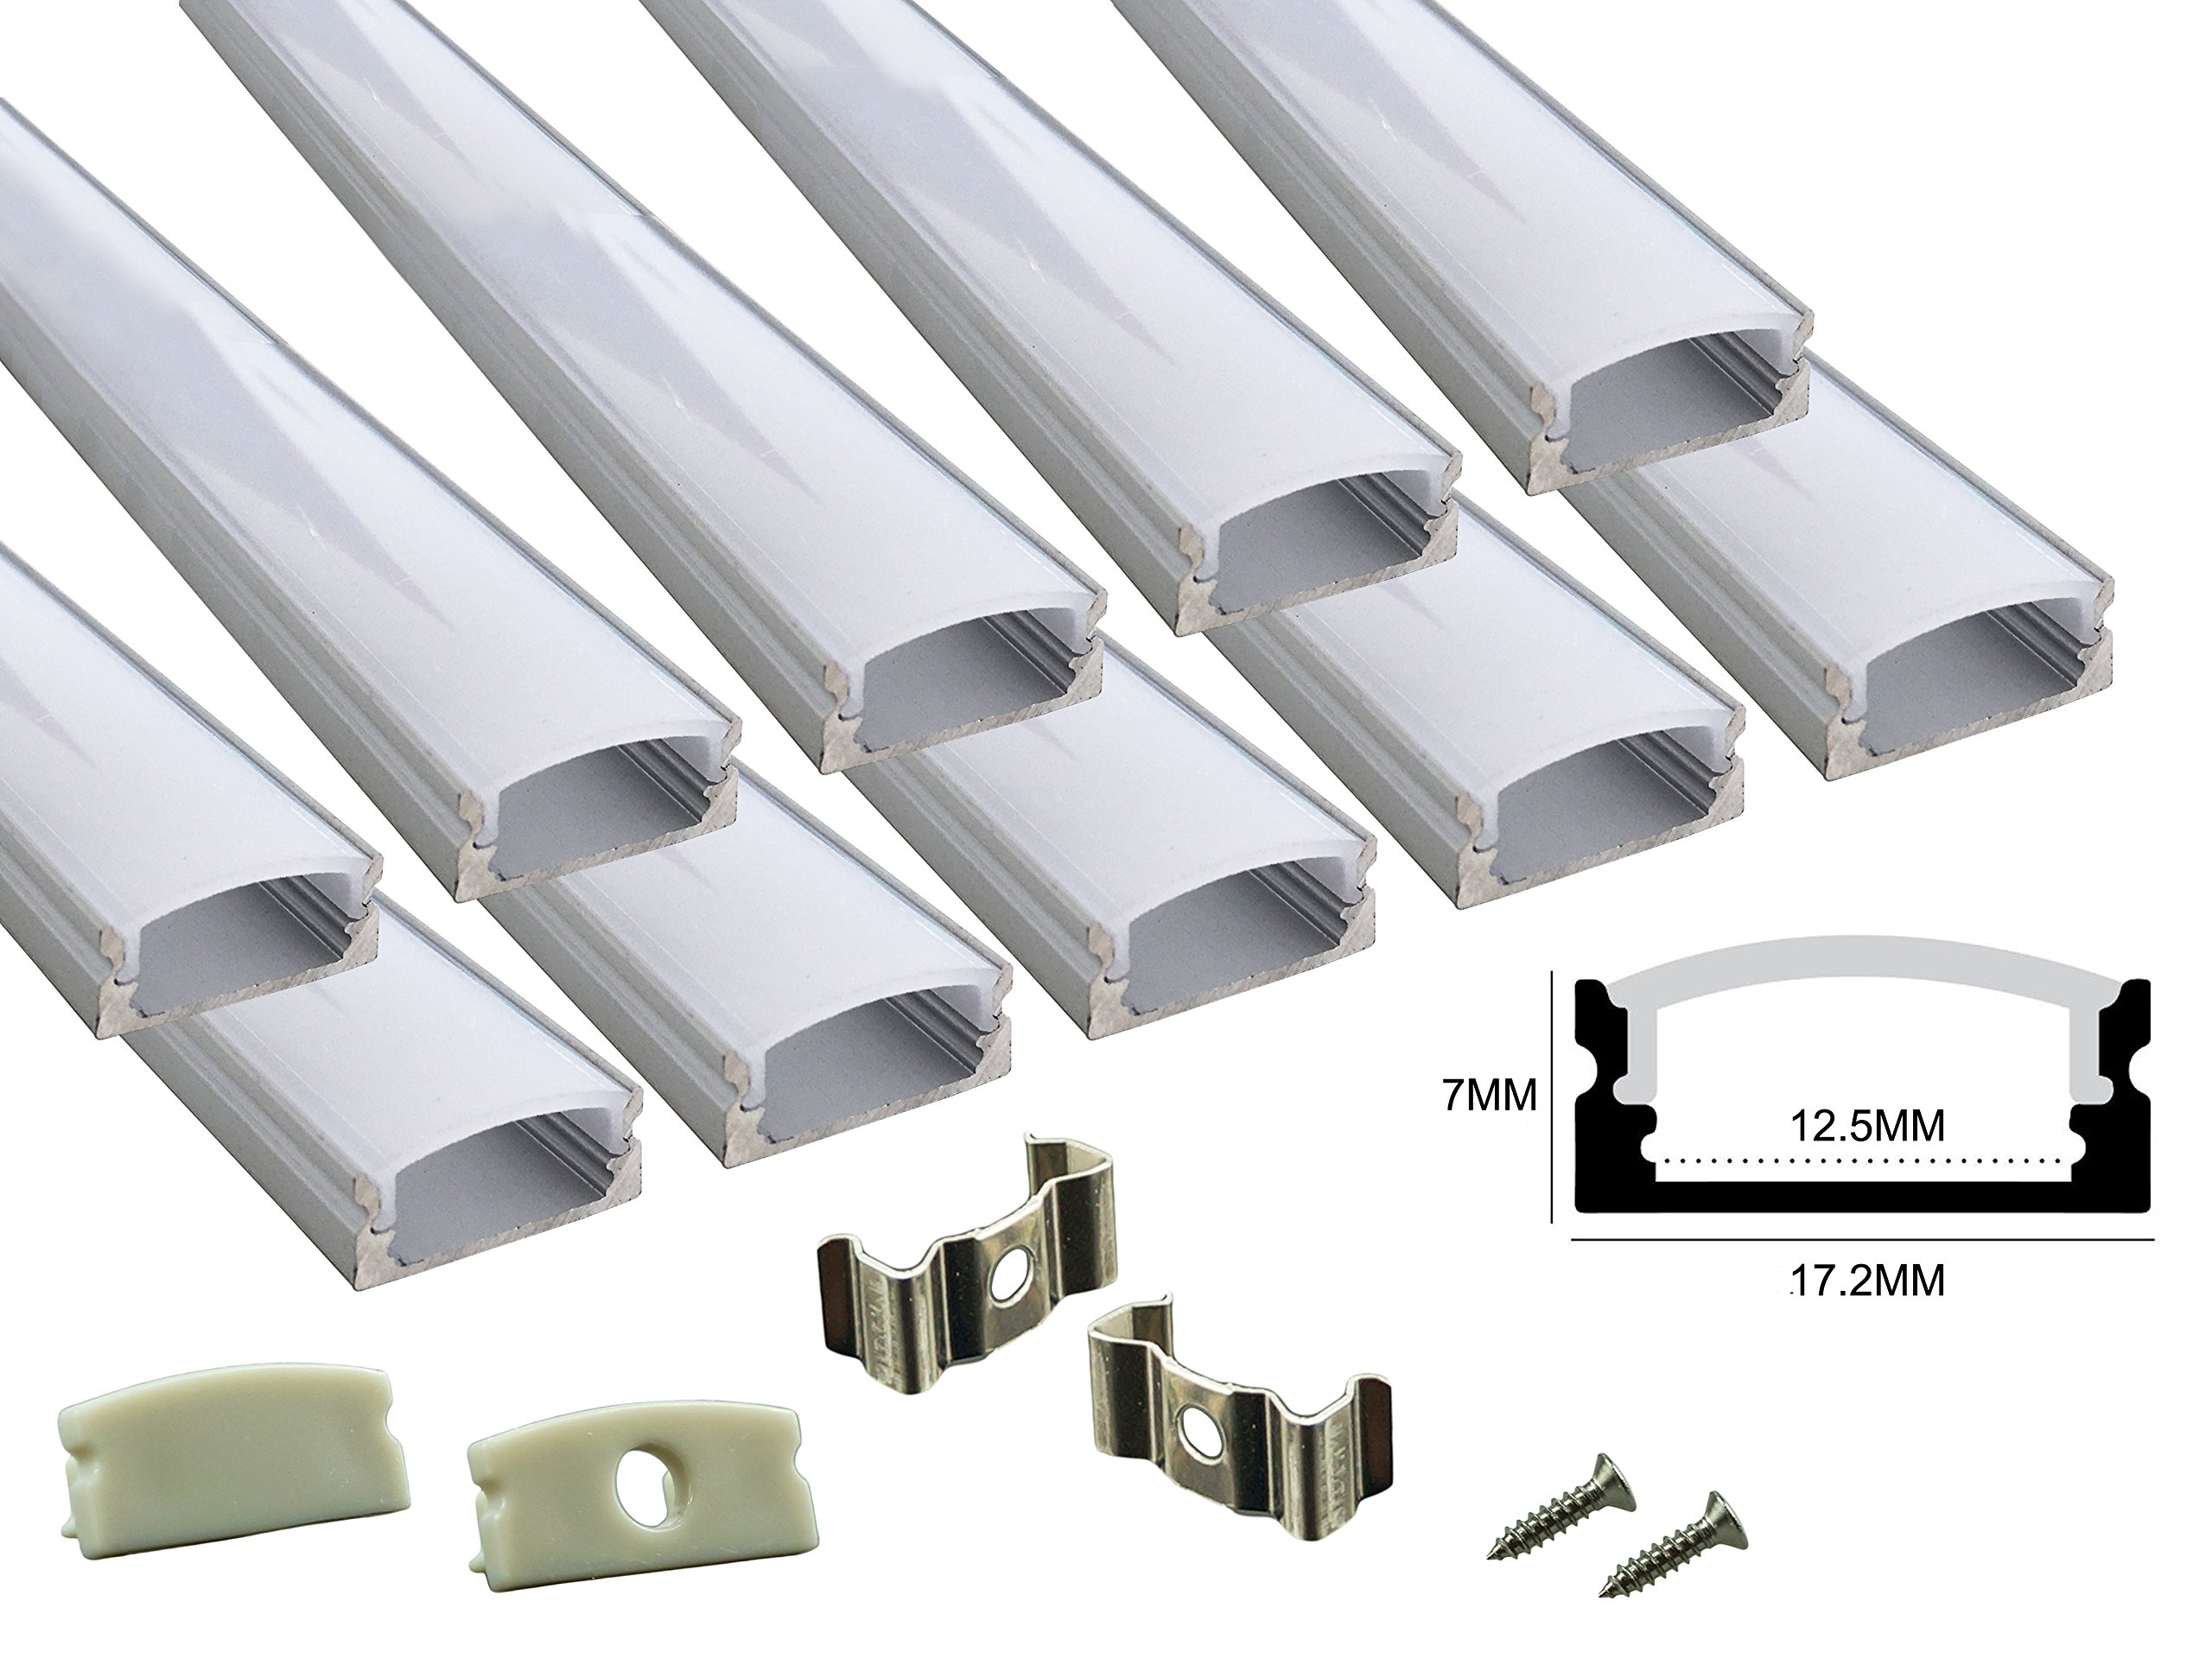 Muzata 10 PACK 1M/3.3ft Aluminum LED Channel for LED Strip Lights, Easy to Cut, U-Shape Aluminum Profile with All Accessories for Easy Installation by Muzata